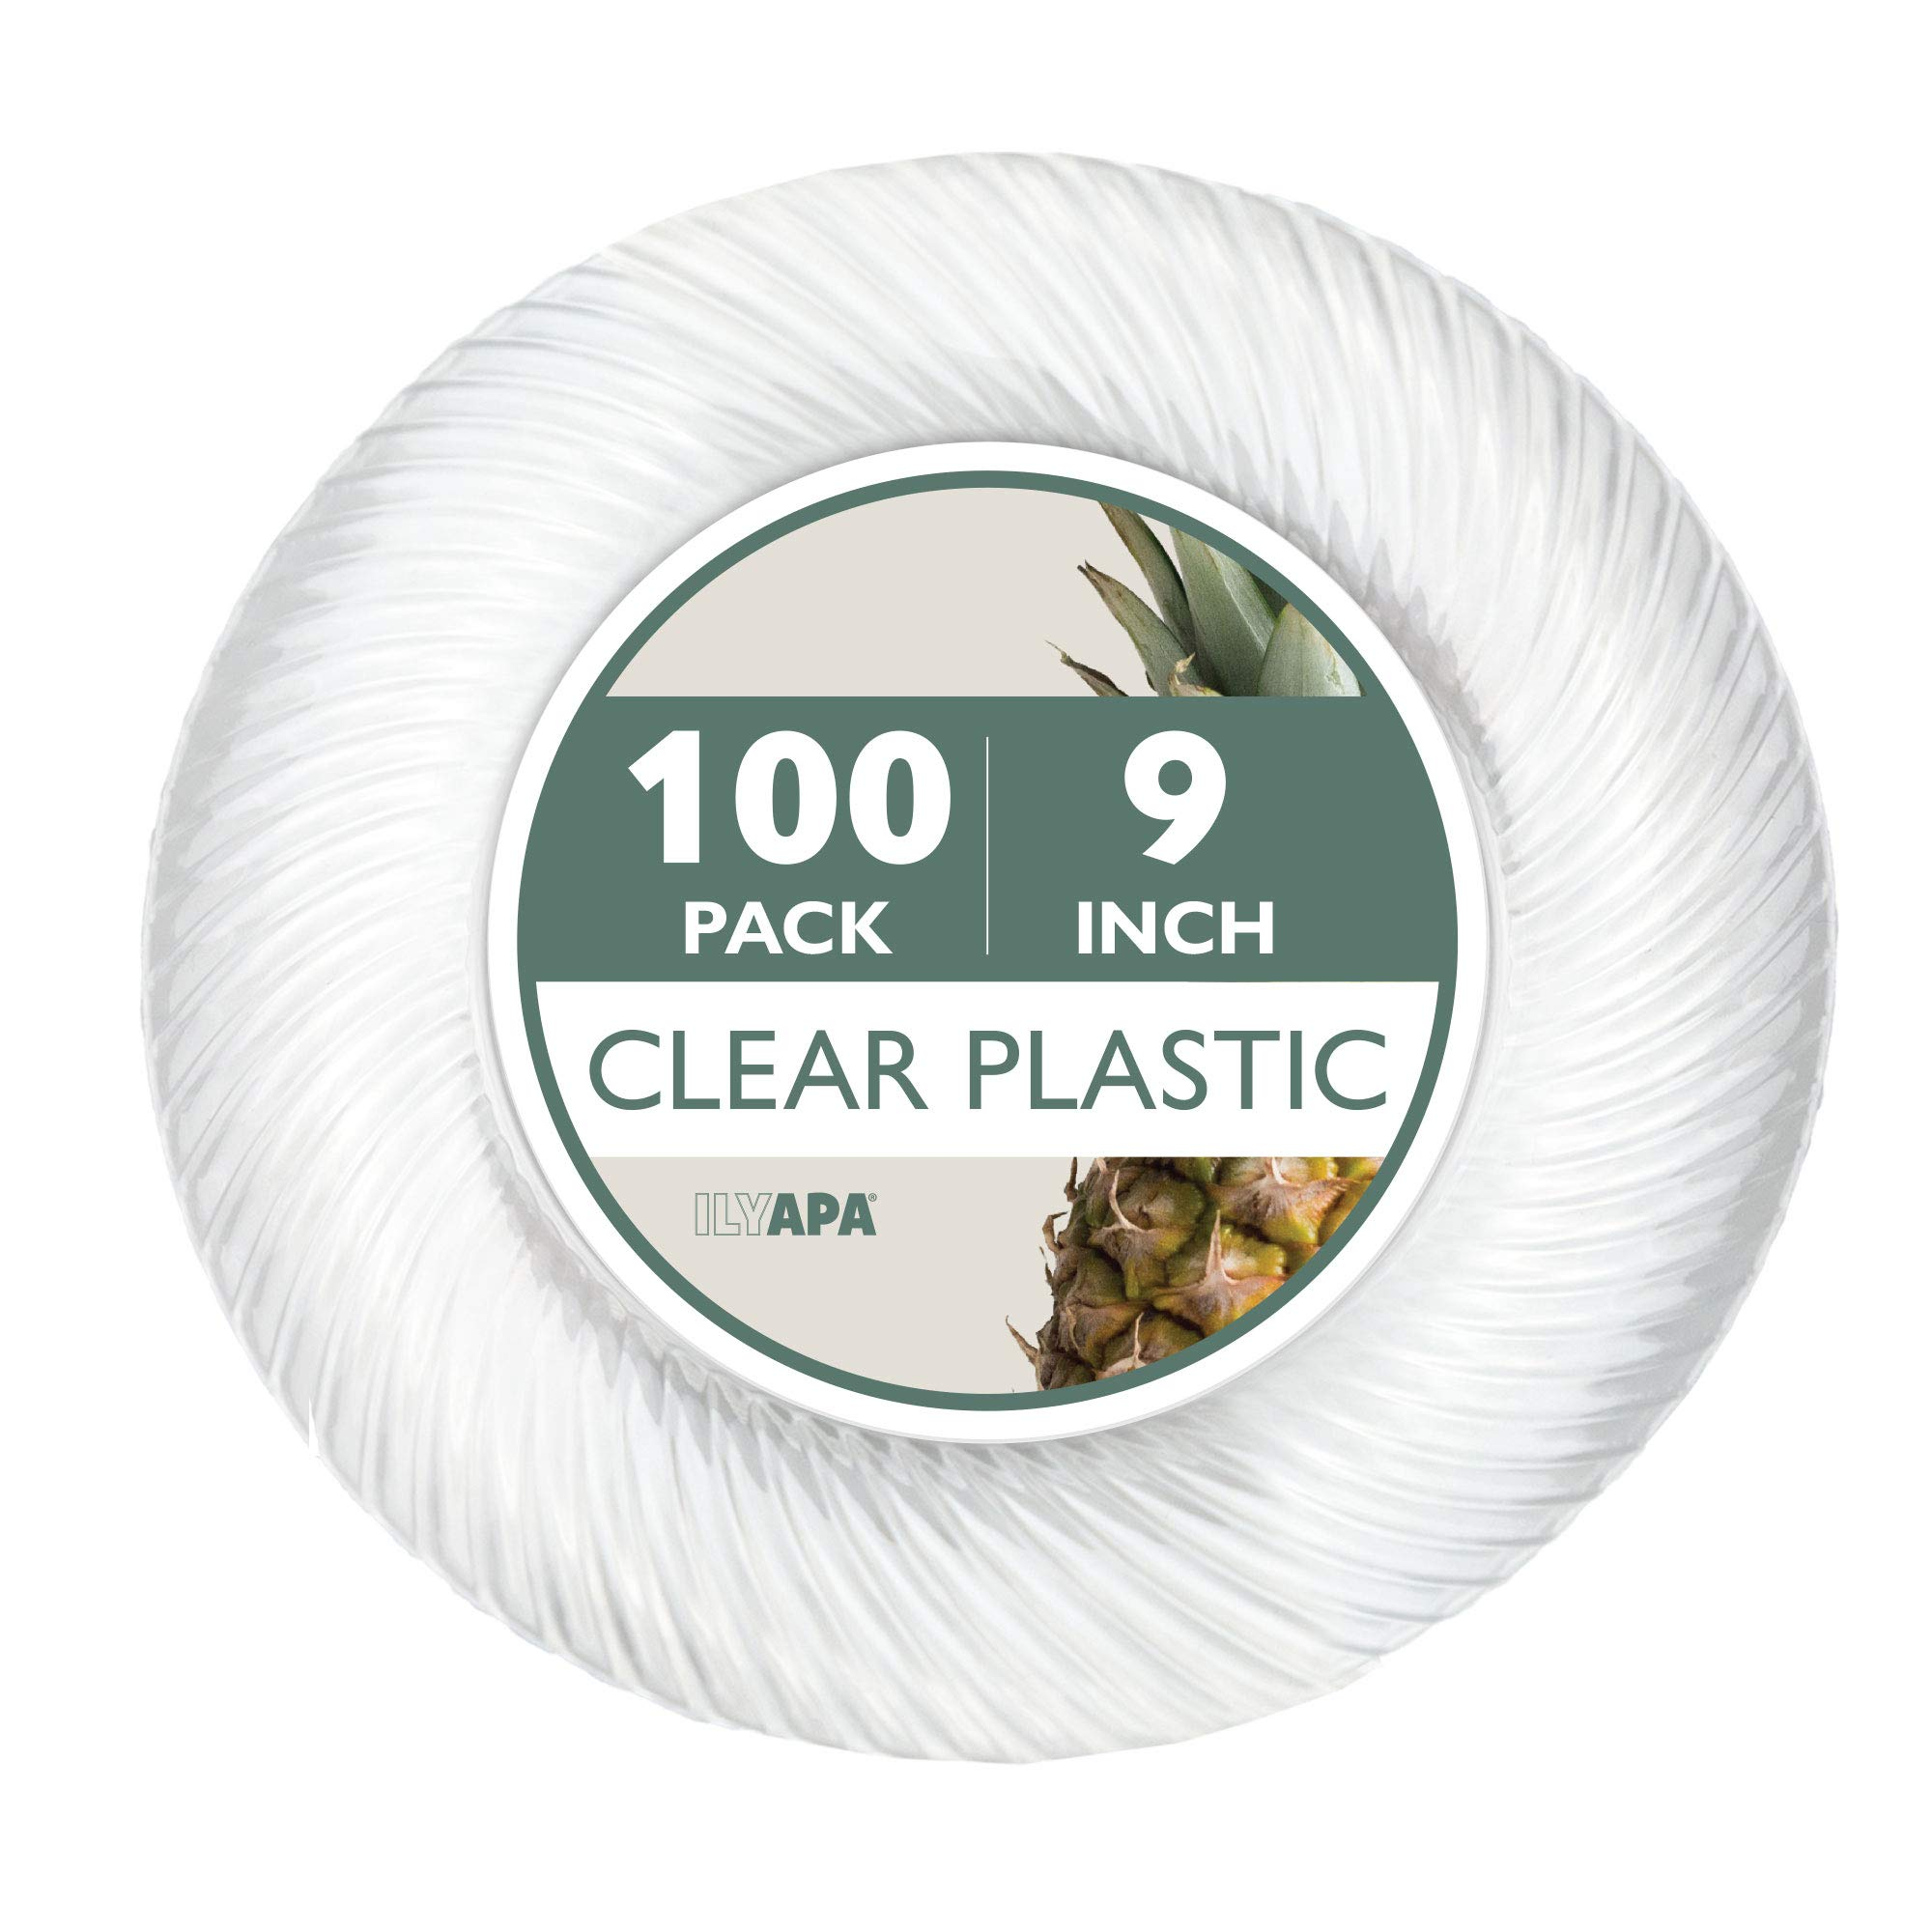 100 Premium Clear Plastic Plates for Dinner Party or Wedding - 9 Inch Fancy Disposable Plastics Plates by Ilyapa